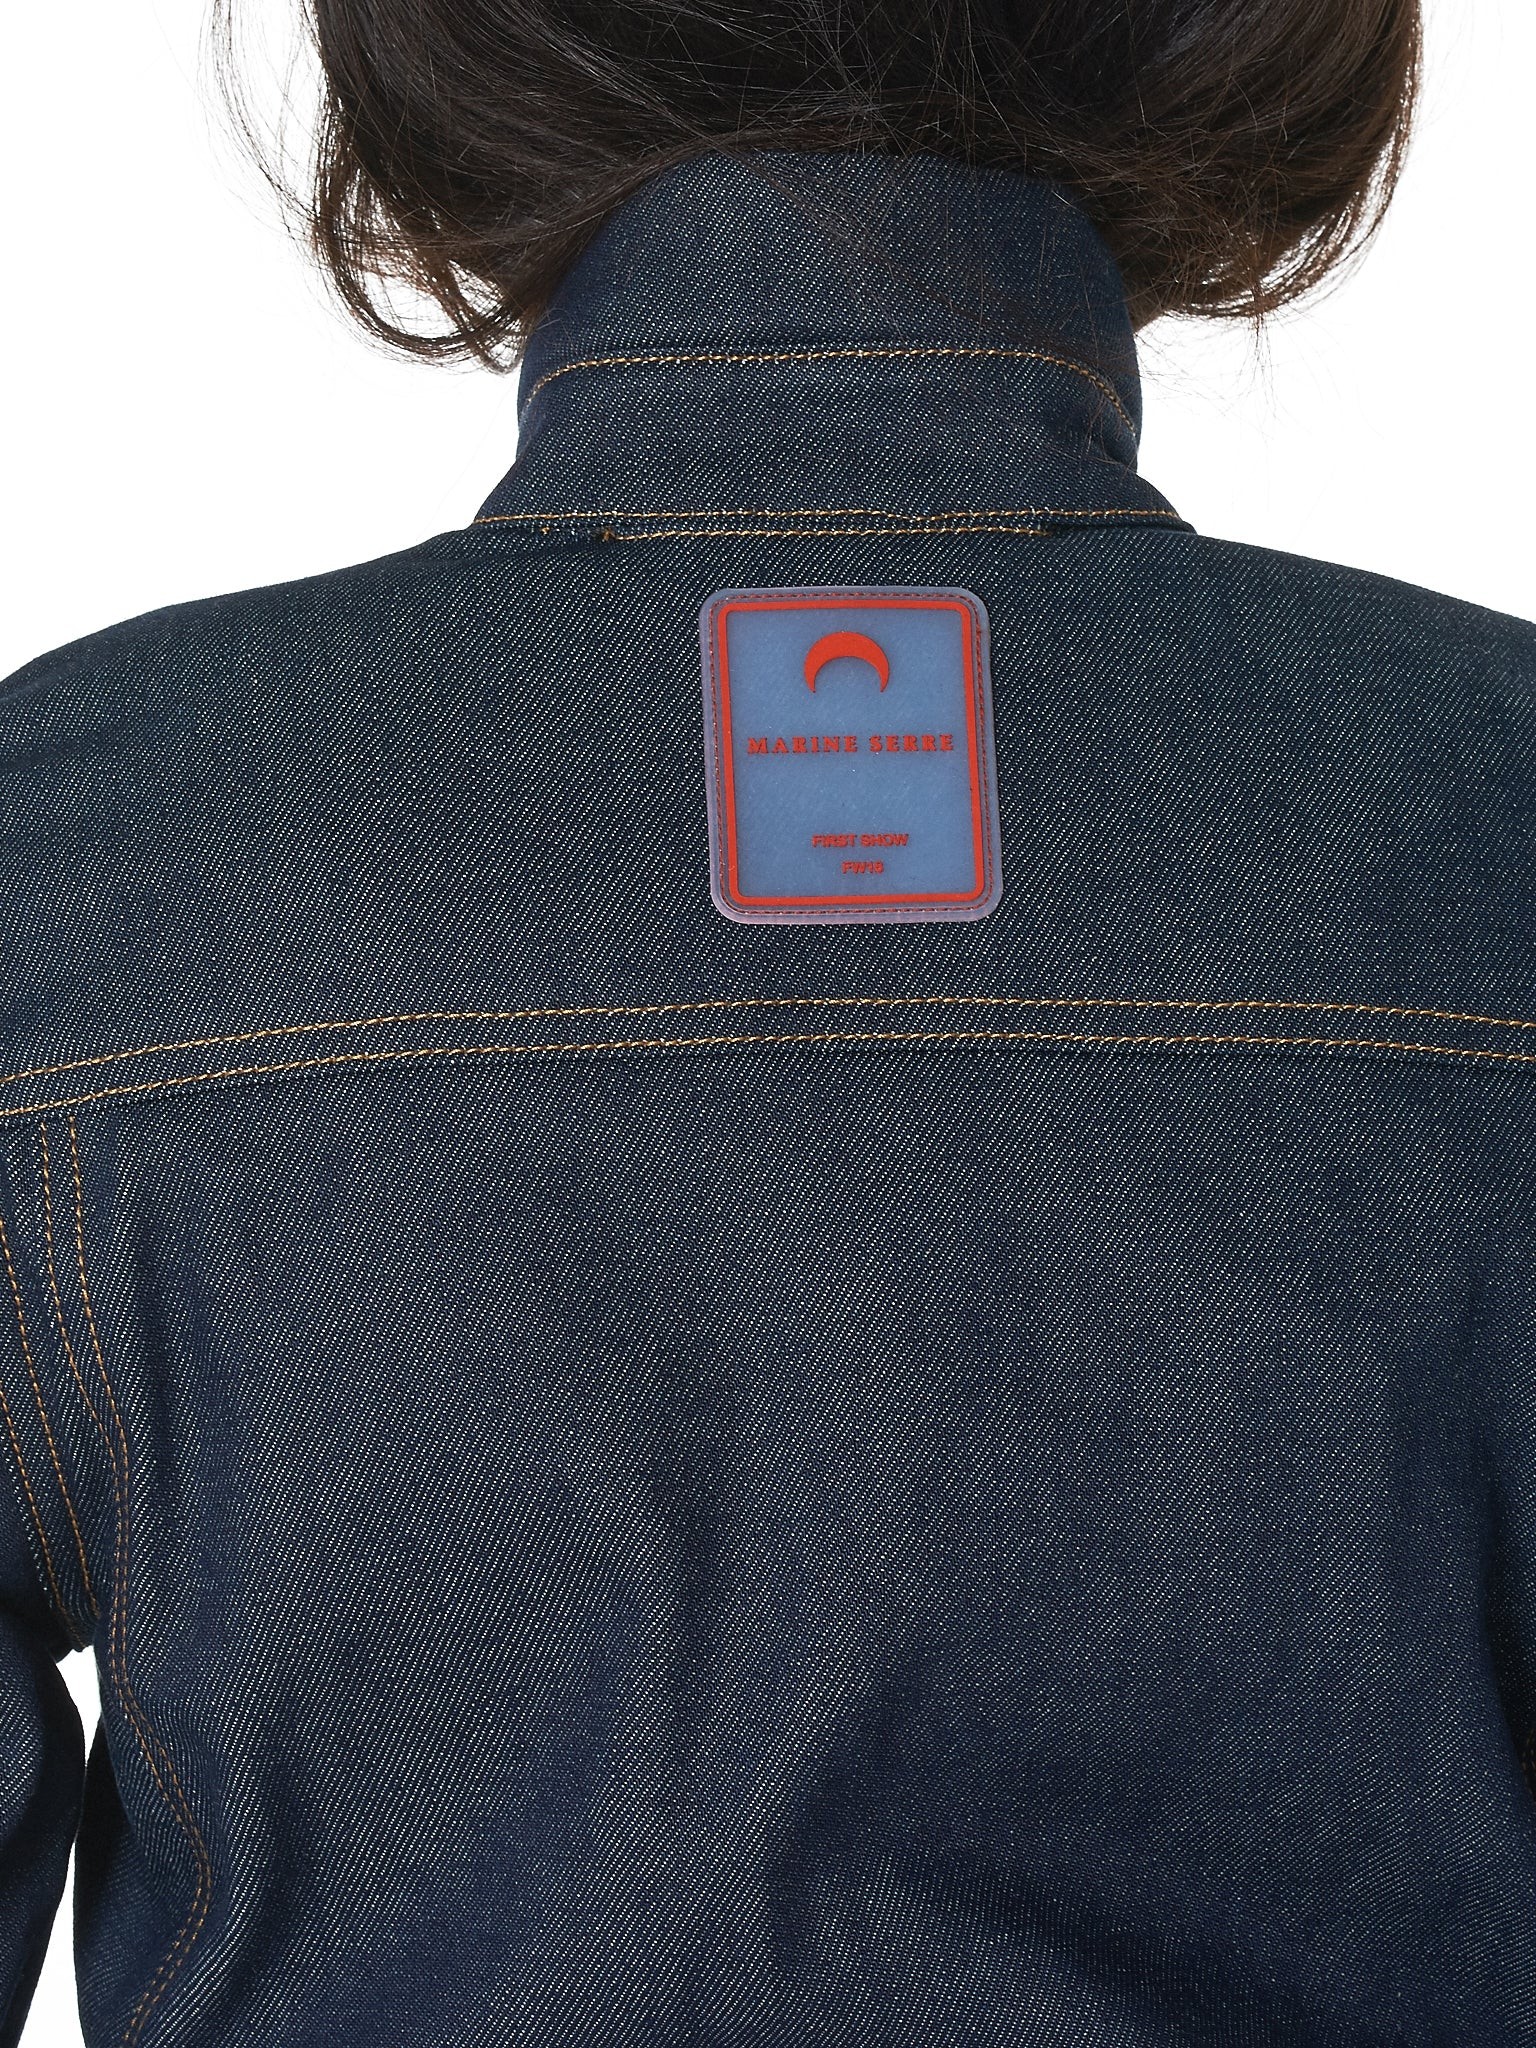 Sculpted Denim Jacket (J03-BLUE-DENIM)